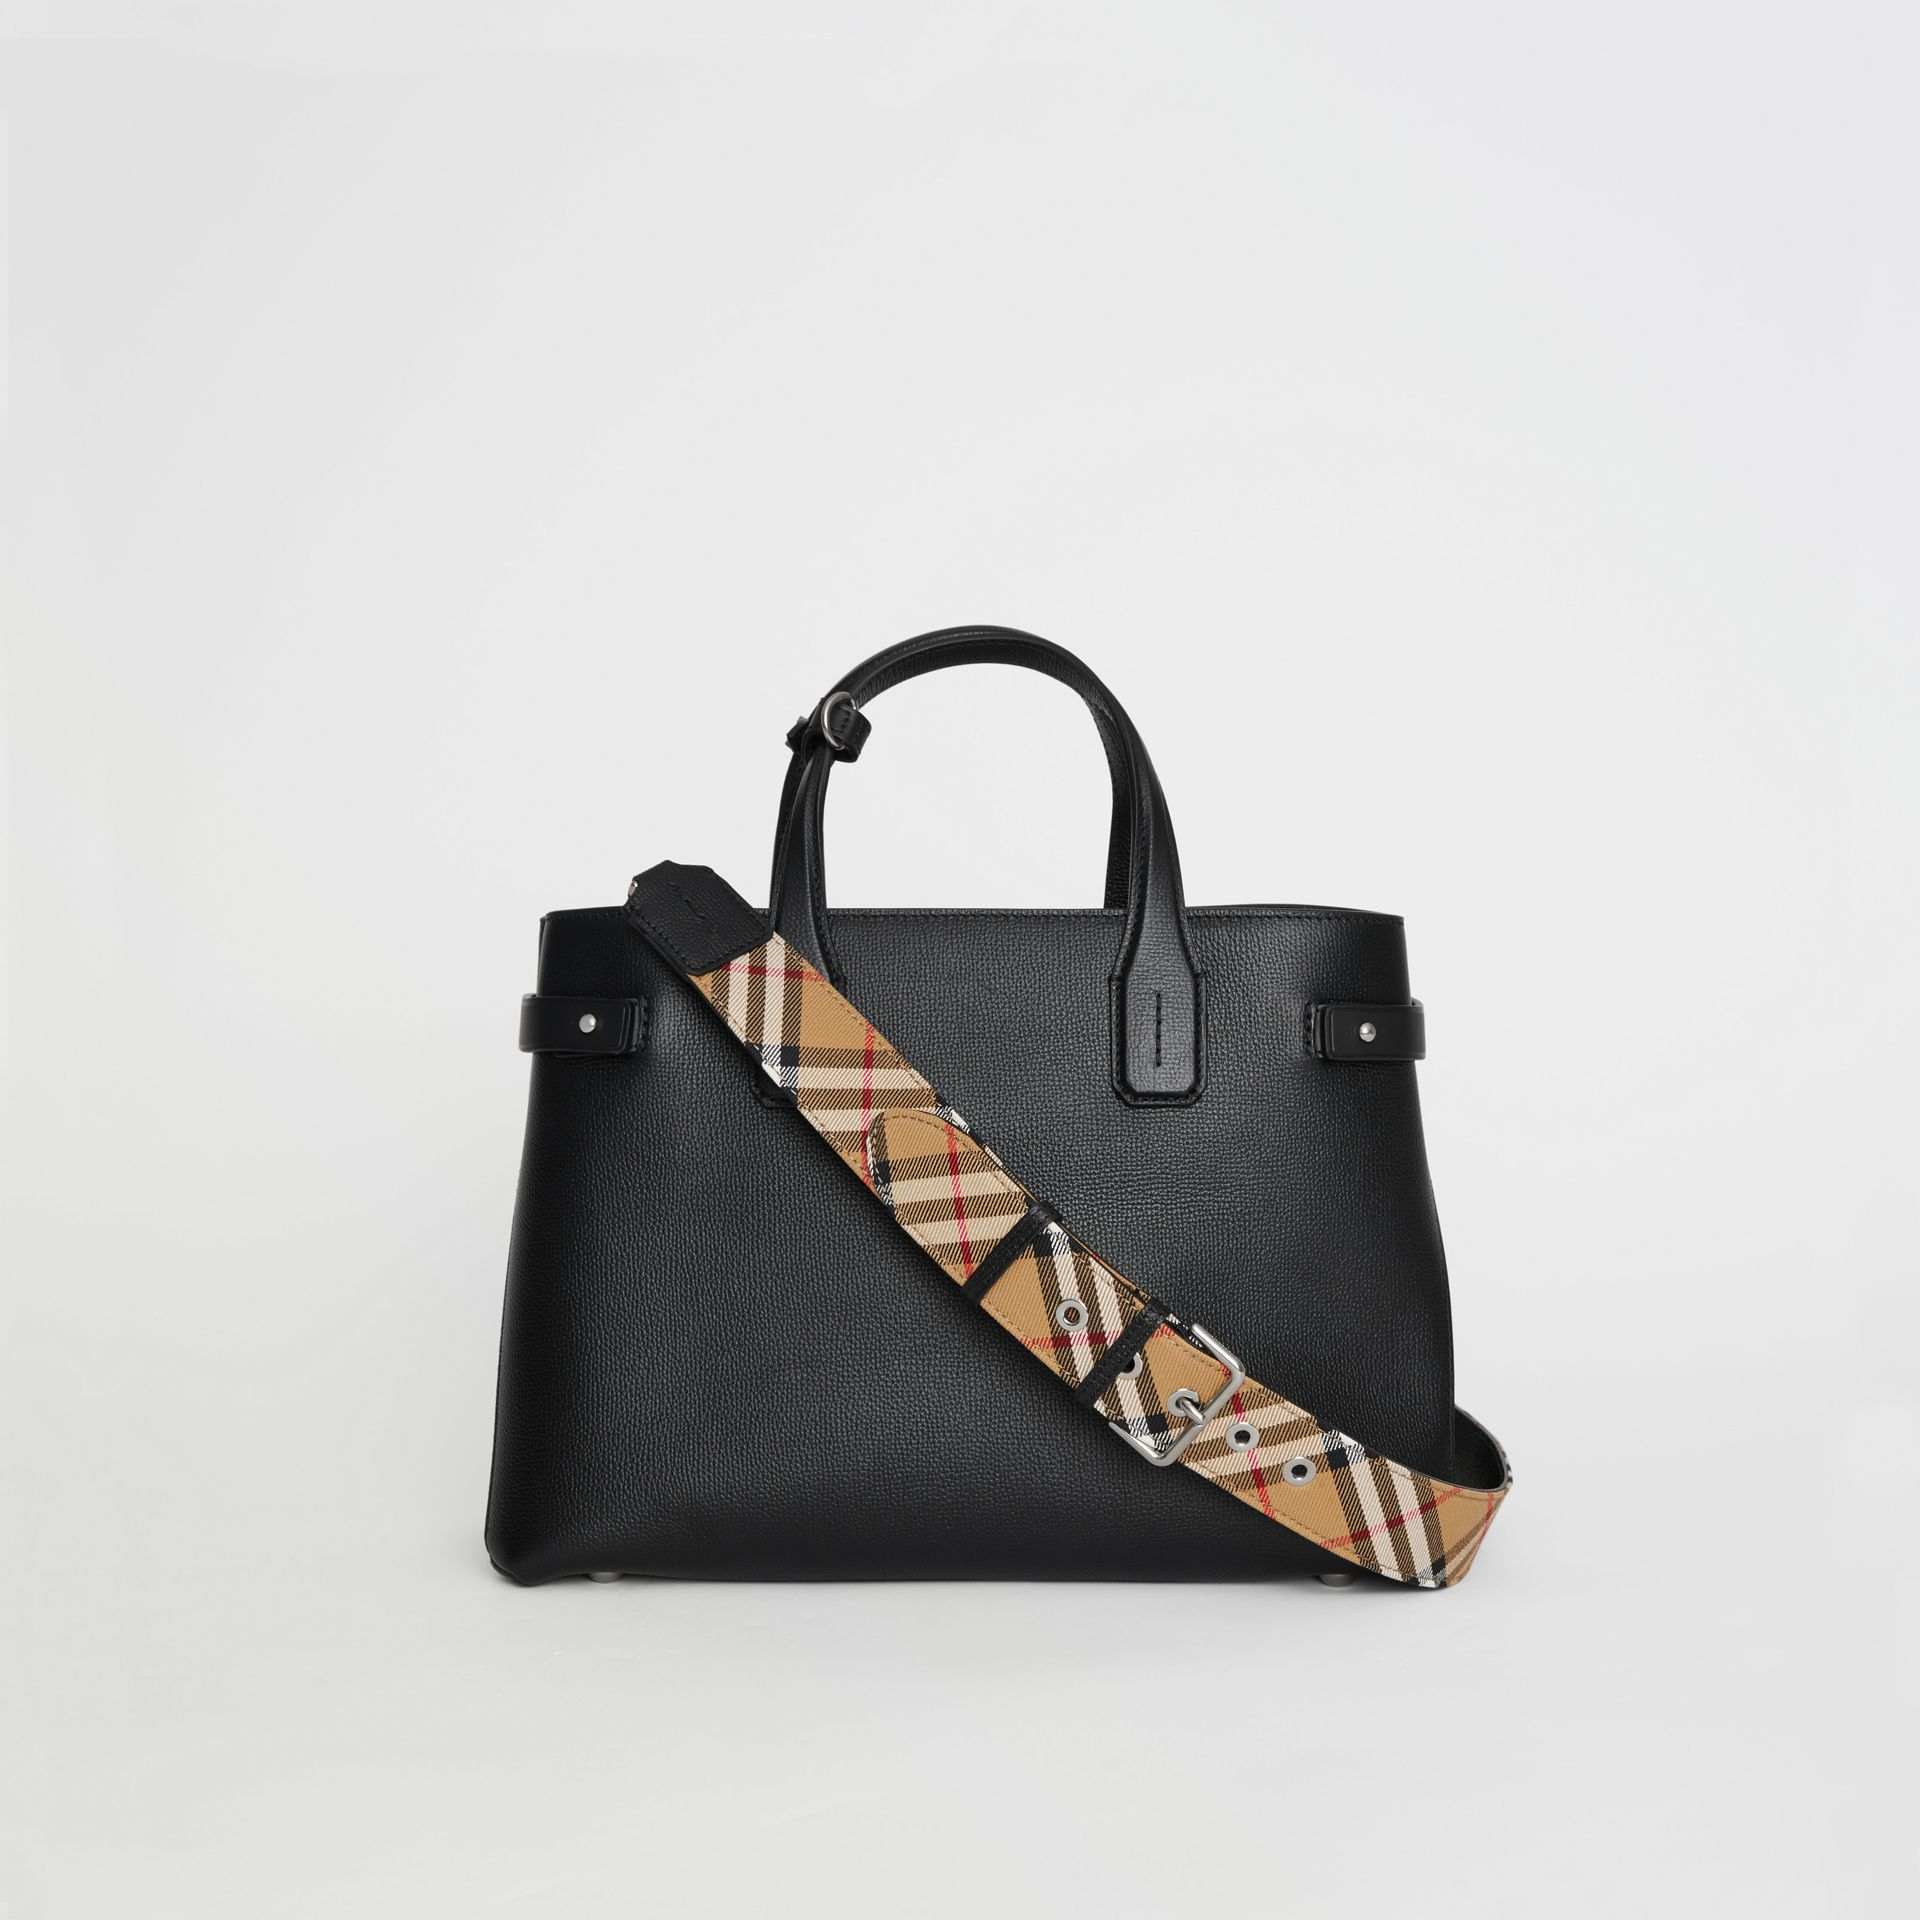 Sac The Banner moyen en cuir et motif Vintage check (Noir) - Femme | Burberry - photo de la galerie 7